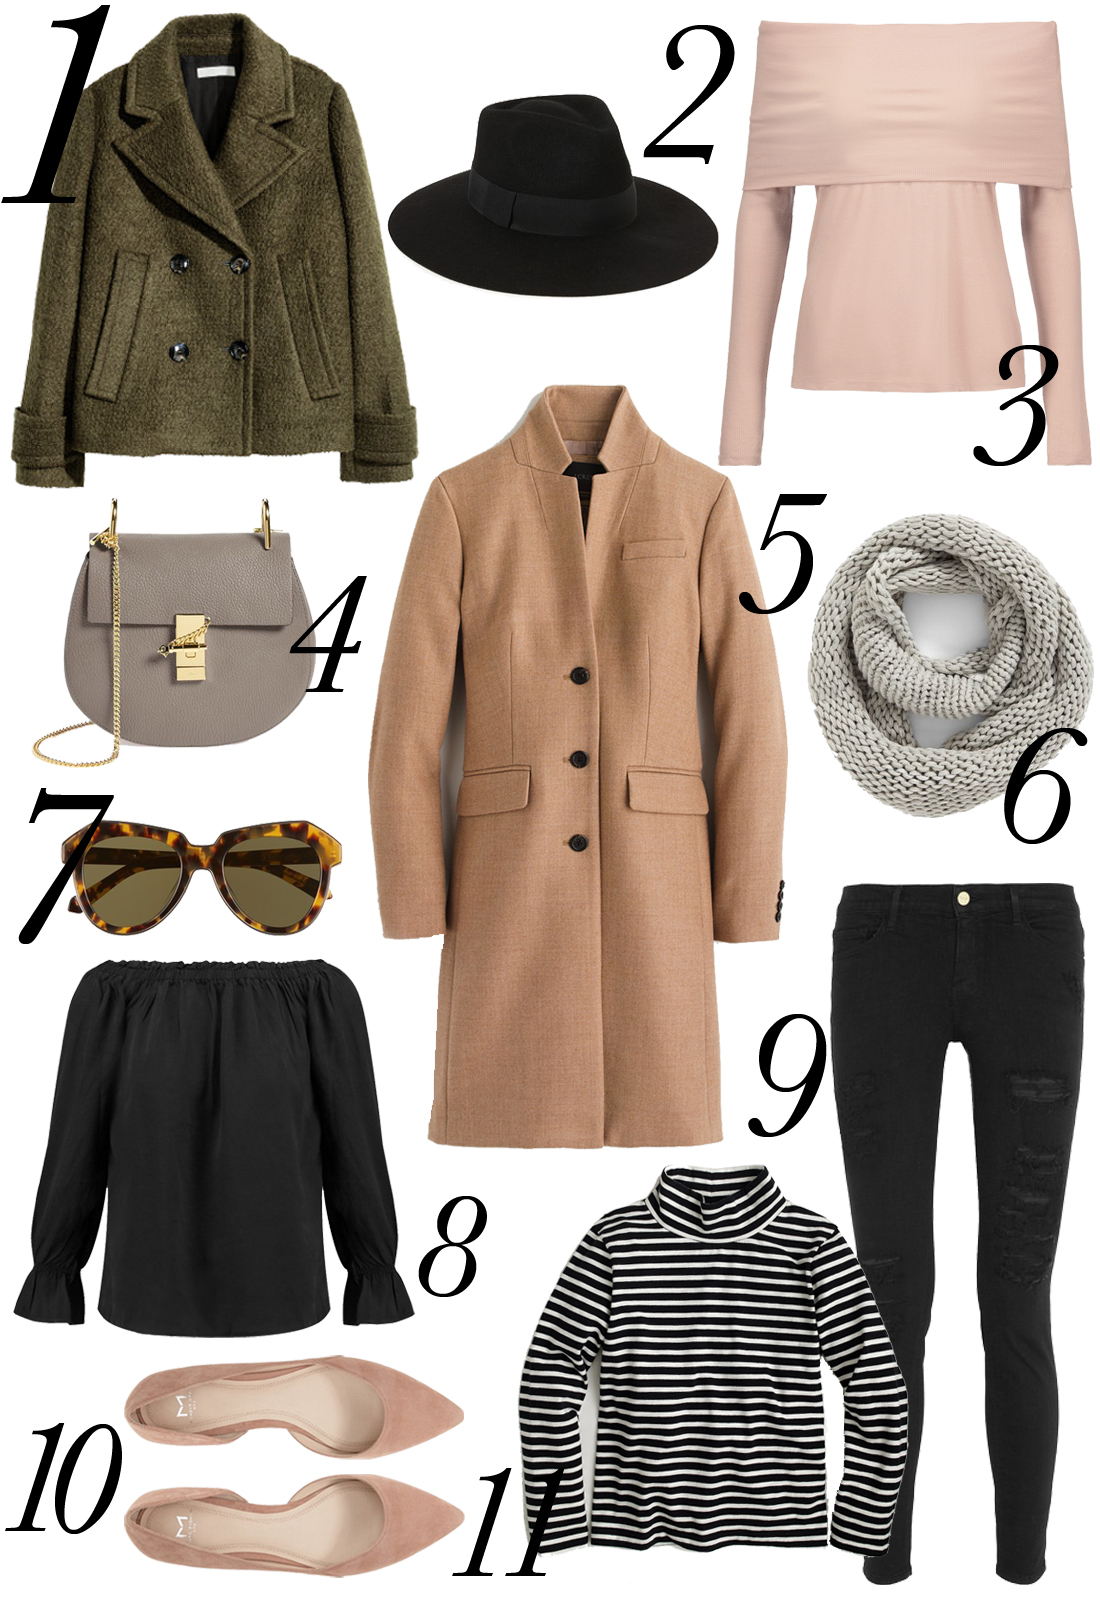 Fall Outfit, Long Camel Coat, Grey Infinity Scarf, Black Ripped Jeans, Striped Turtleneck, Pink Flats, Grey Chloe Drew Handbag, Black Wool Hat, Olive Pea Coat, Black Off-the-Shoulder Blouse, Pink Off-the-Shoulder Sweater